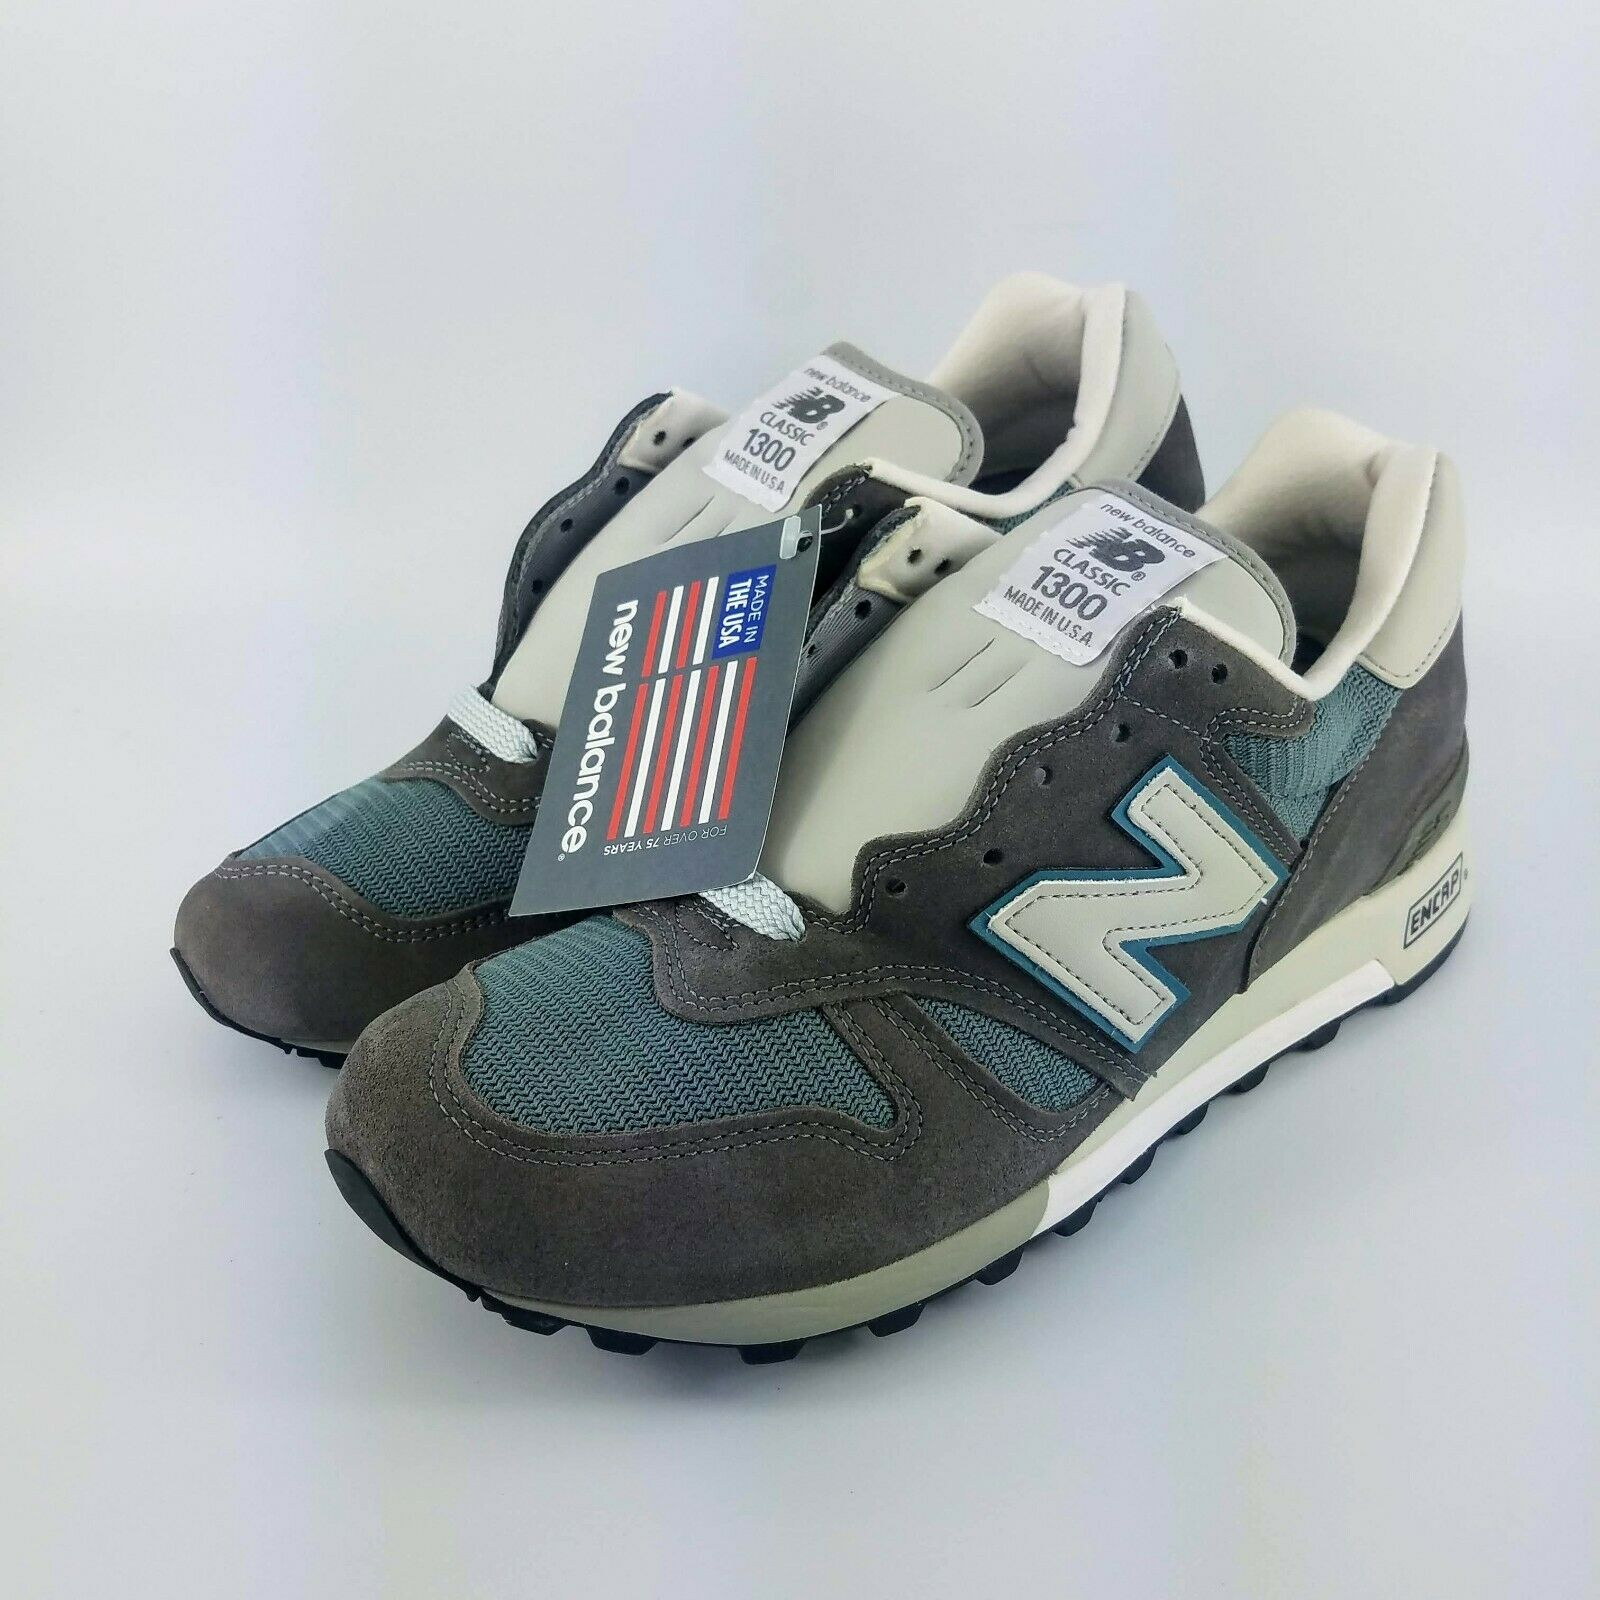 New Balance 1300 Heritage Made in USA Running shoes - Grey - M1300CLS - 10.5 2E